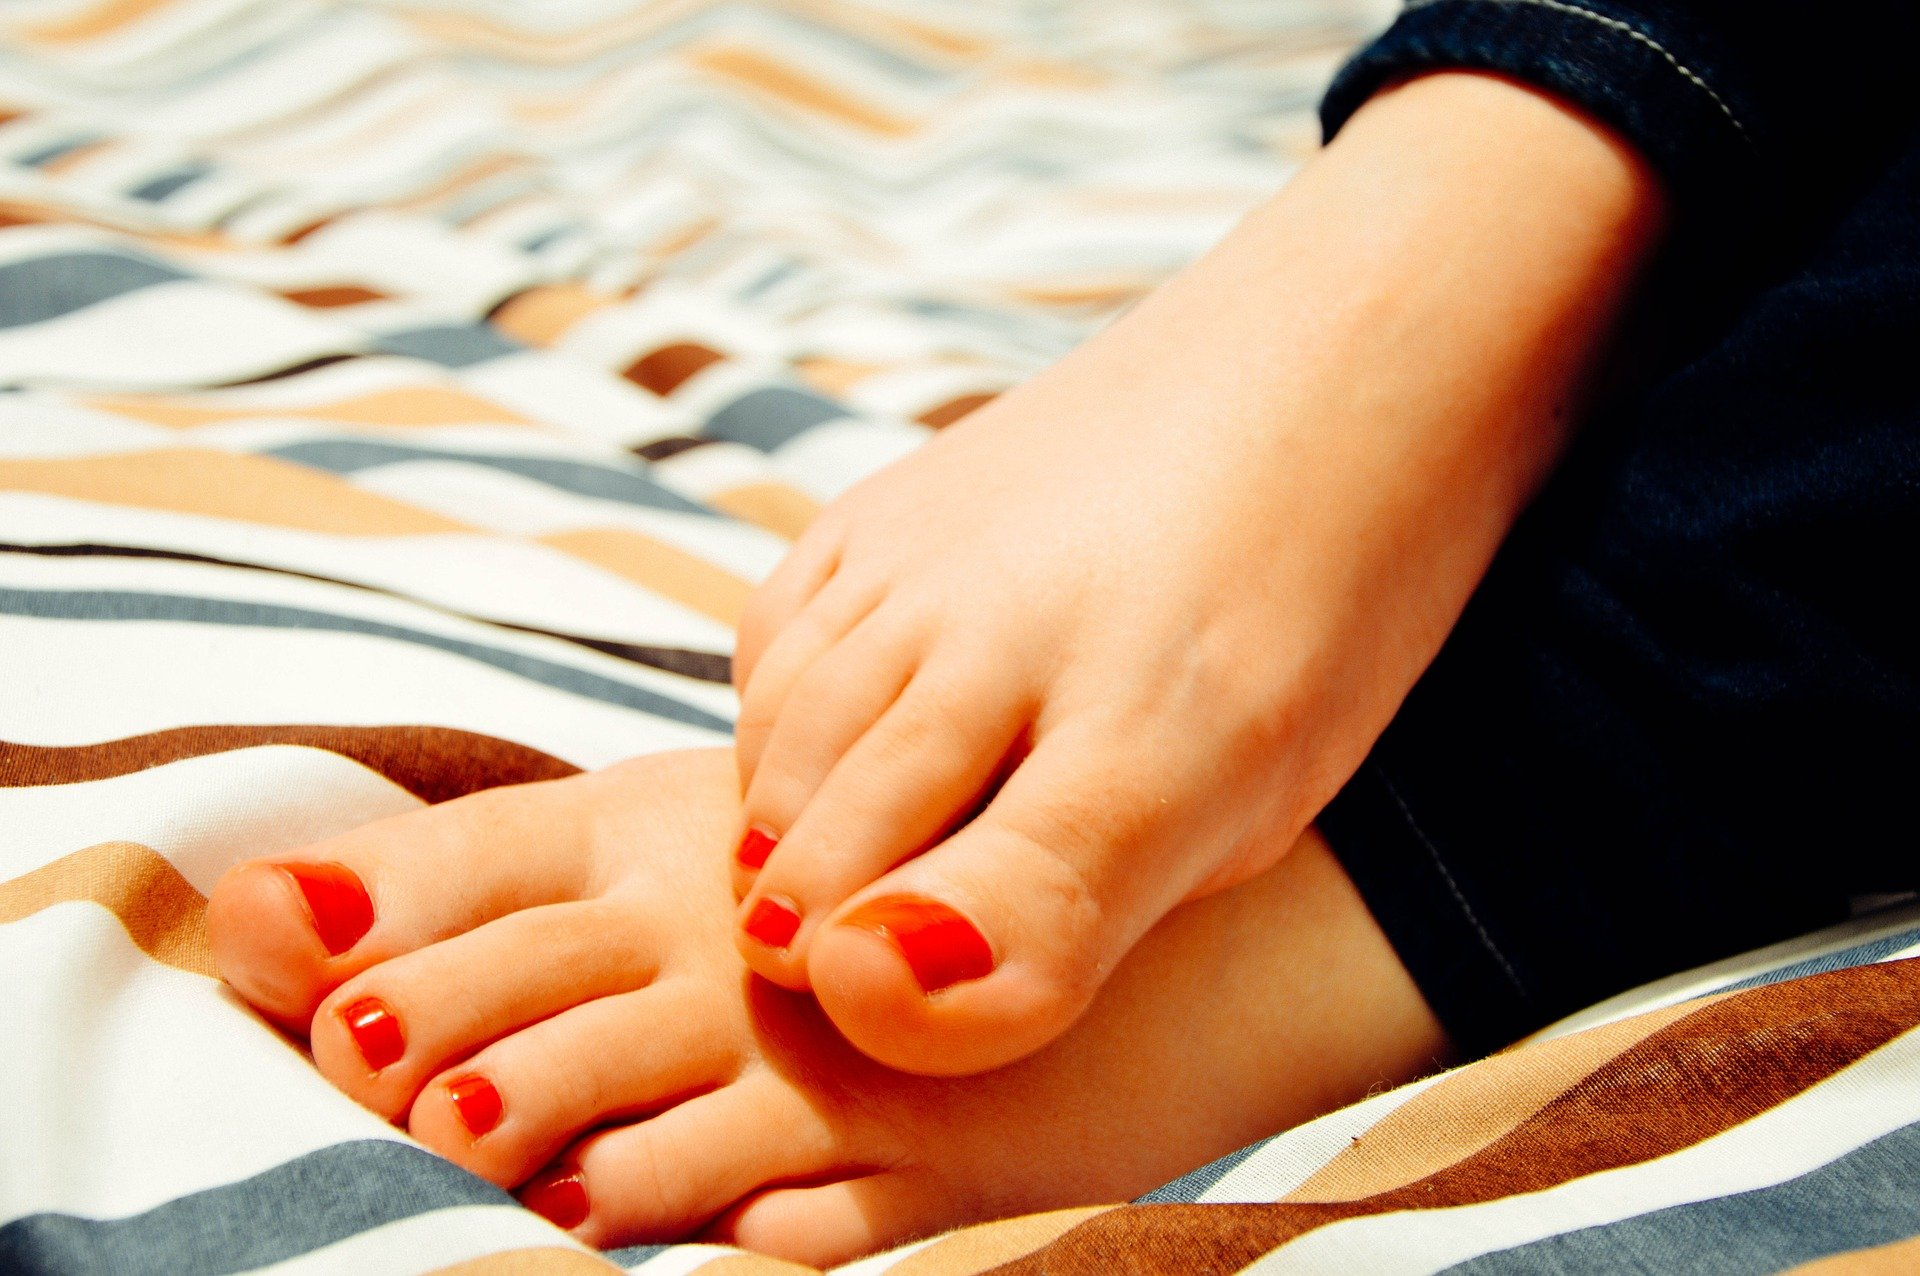 Close up of a woman's pedicured toes with red nail polish. Serving as a featured image for the Pedicure Course featured image.